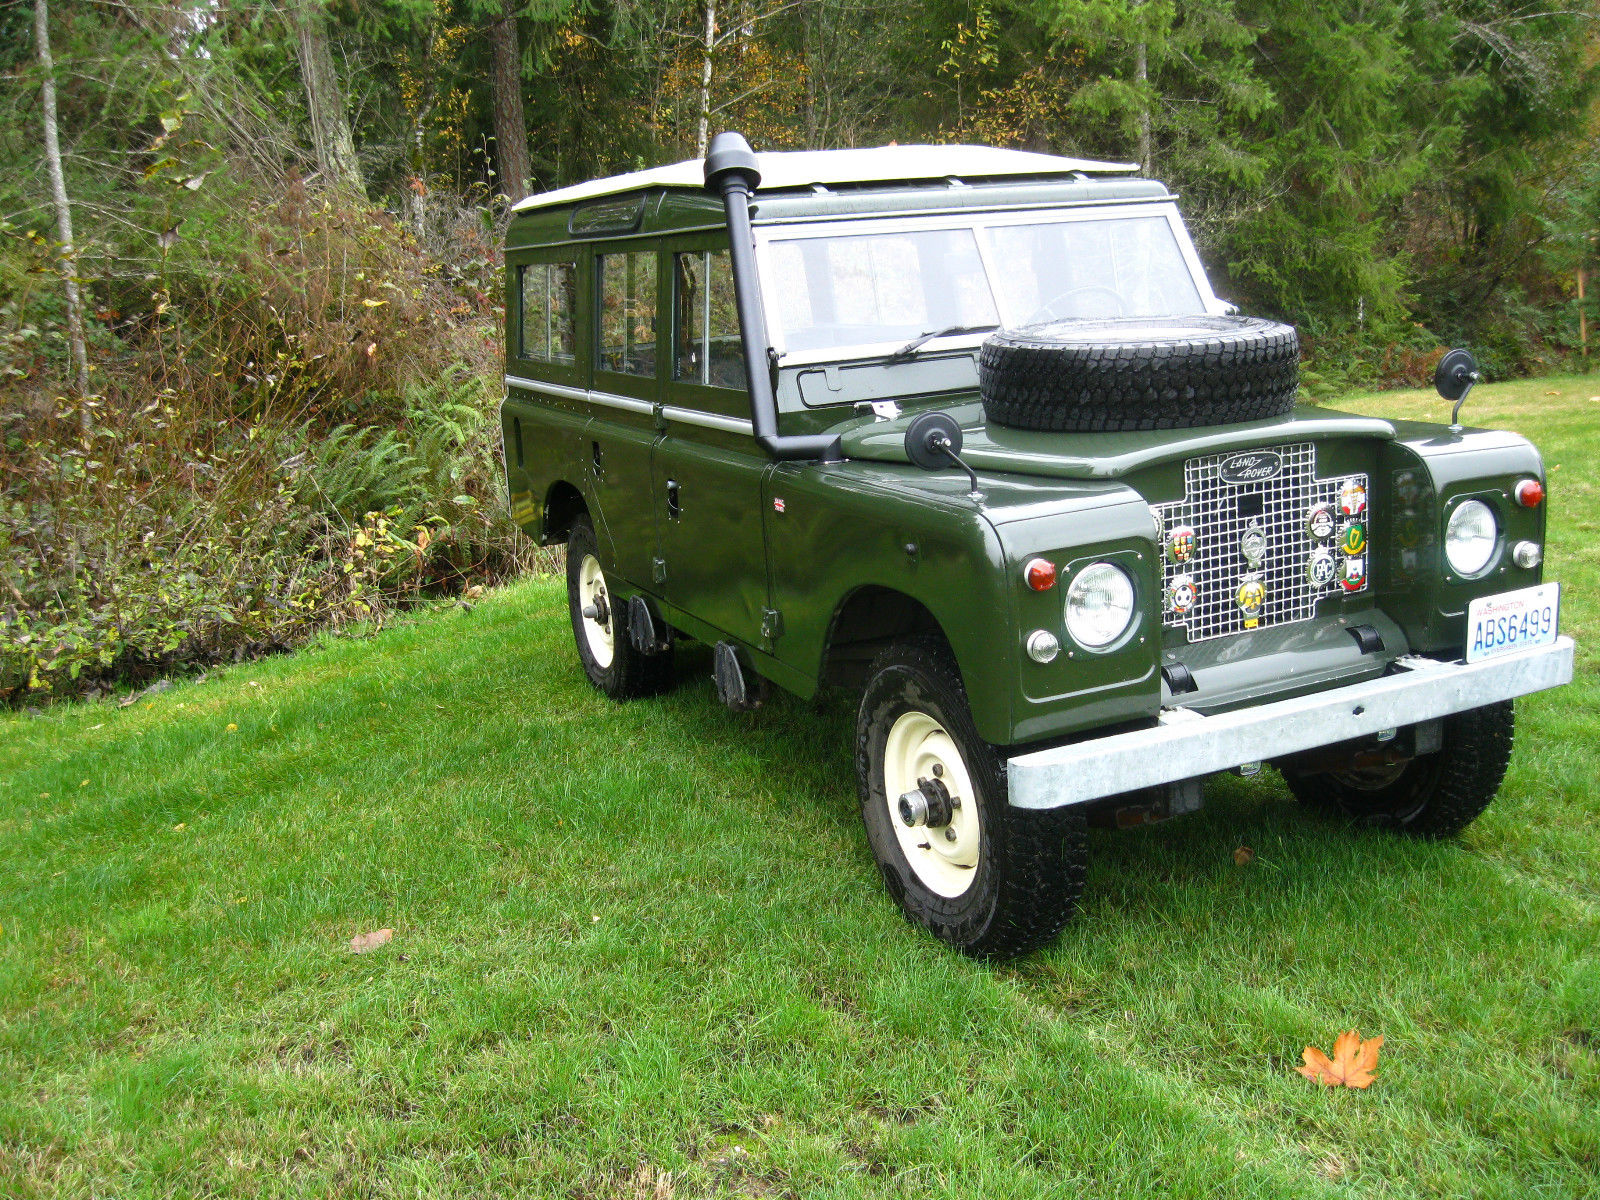 1971 LAND ROVER Series IIA Safari Station Wagon ...